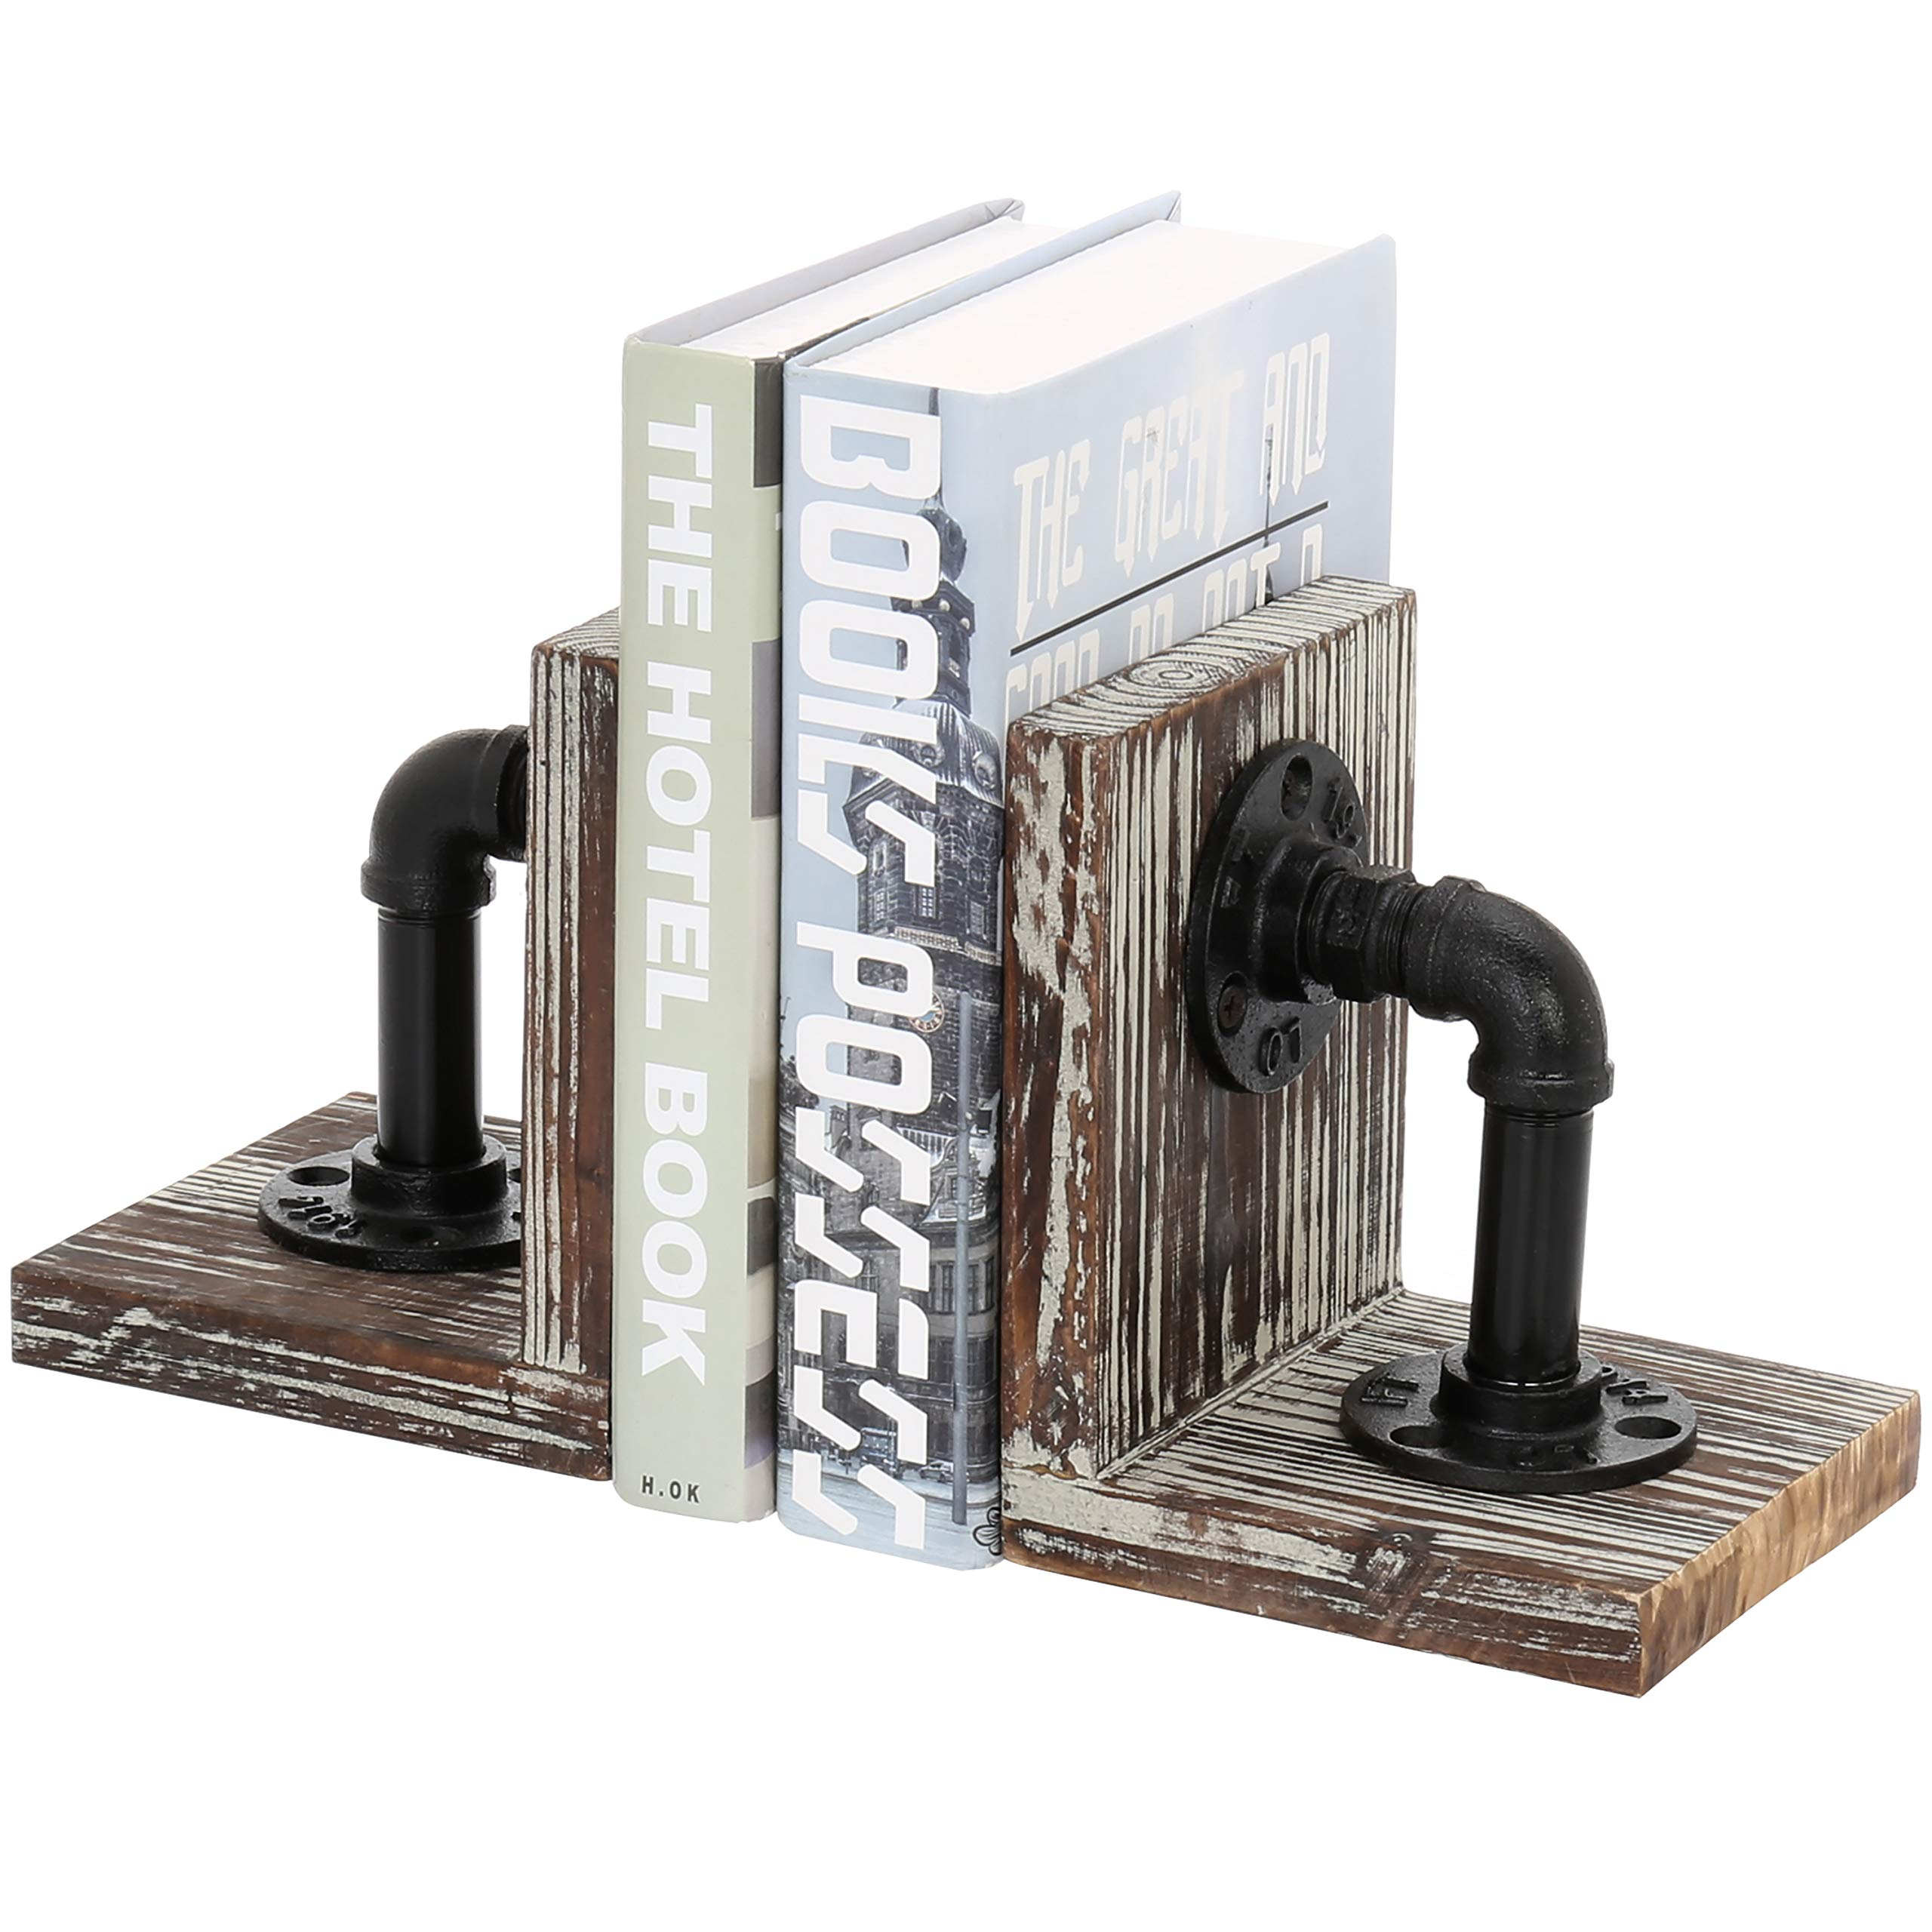 MyGift Industrial-Style Pipe & Torched Wood Bookends, 1-Pair by MyGift